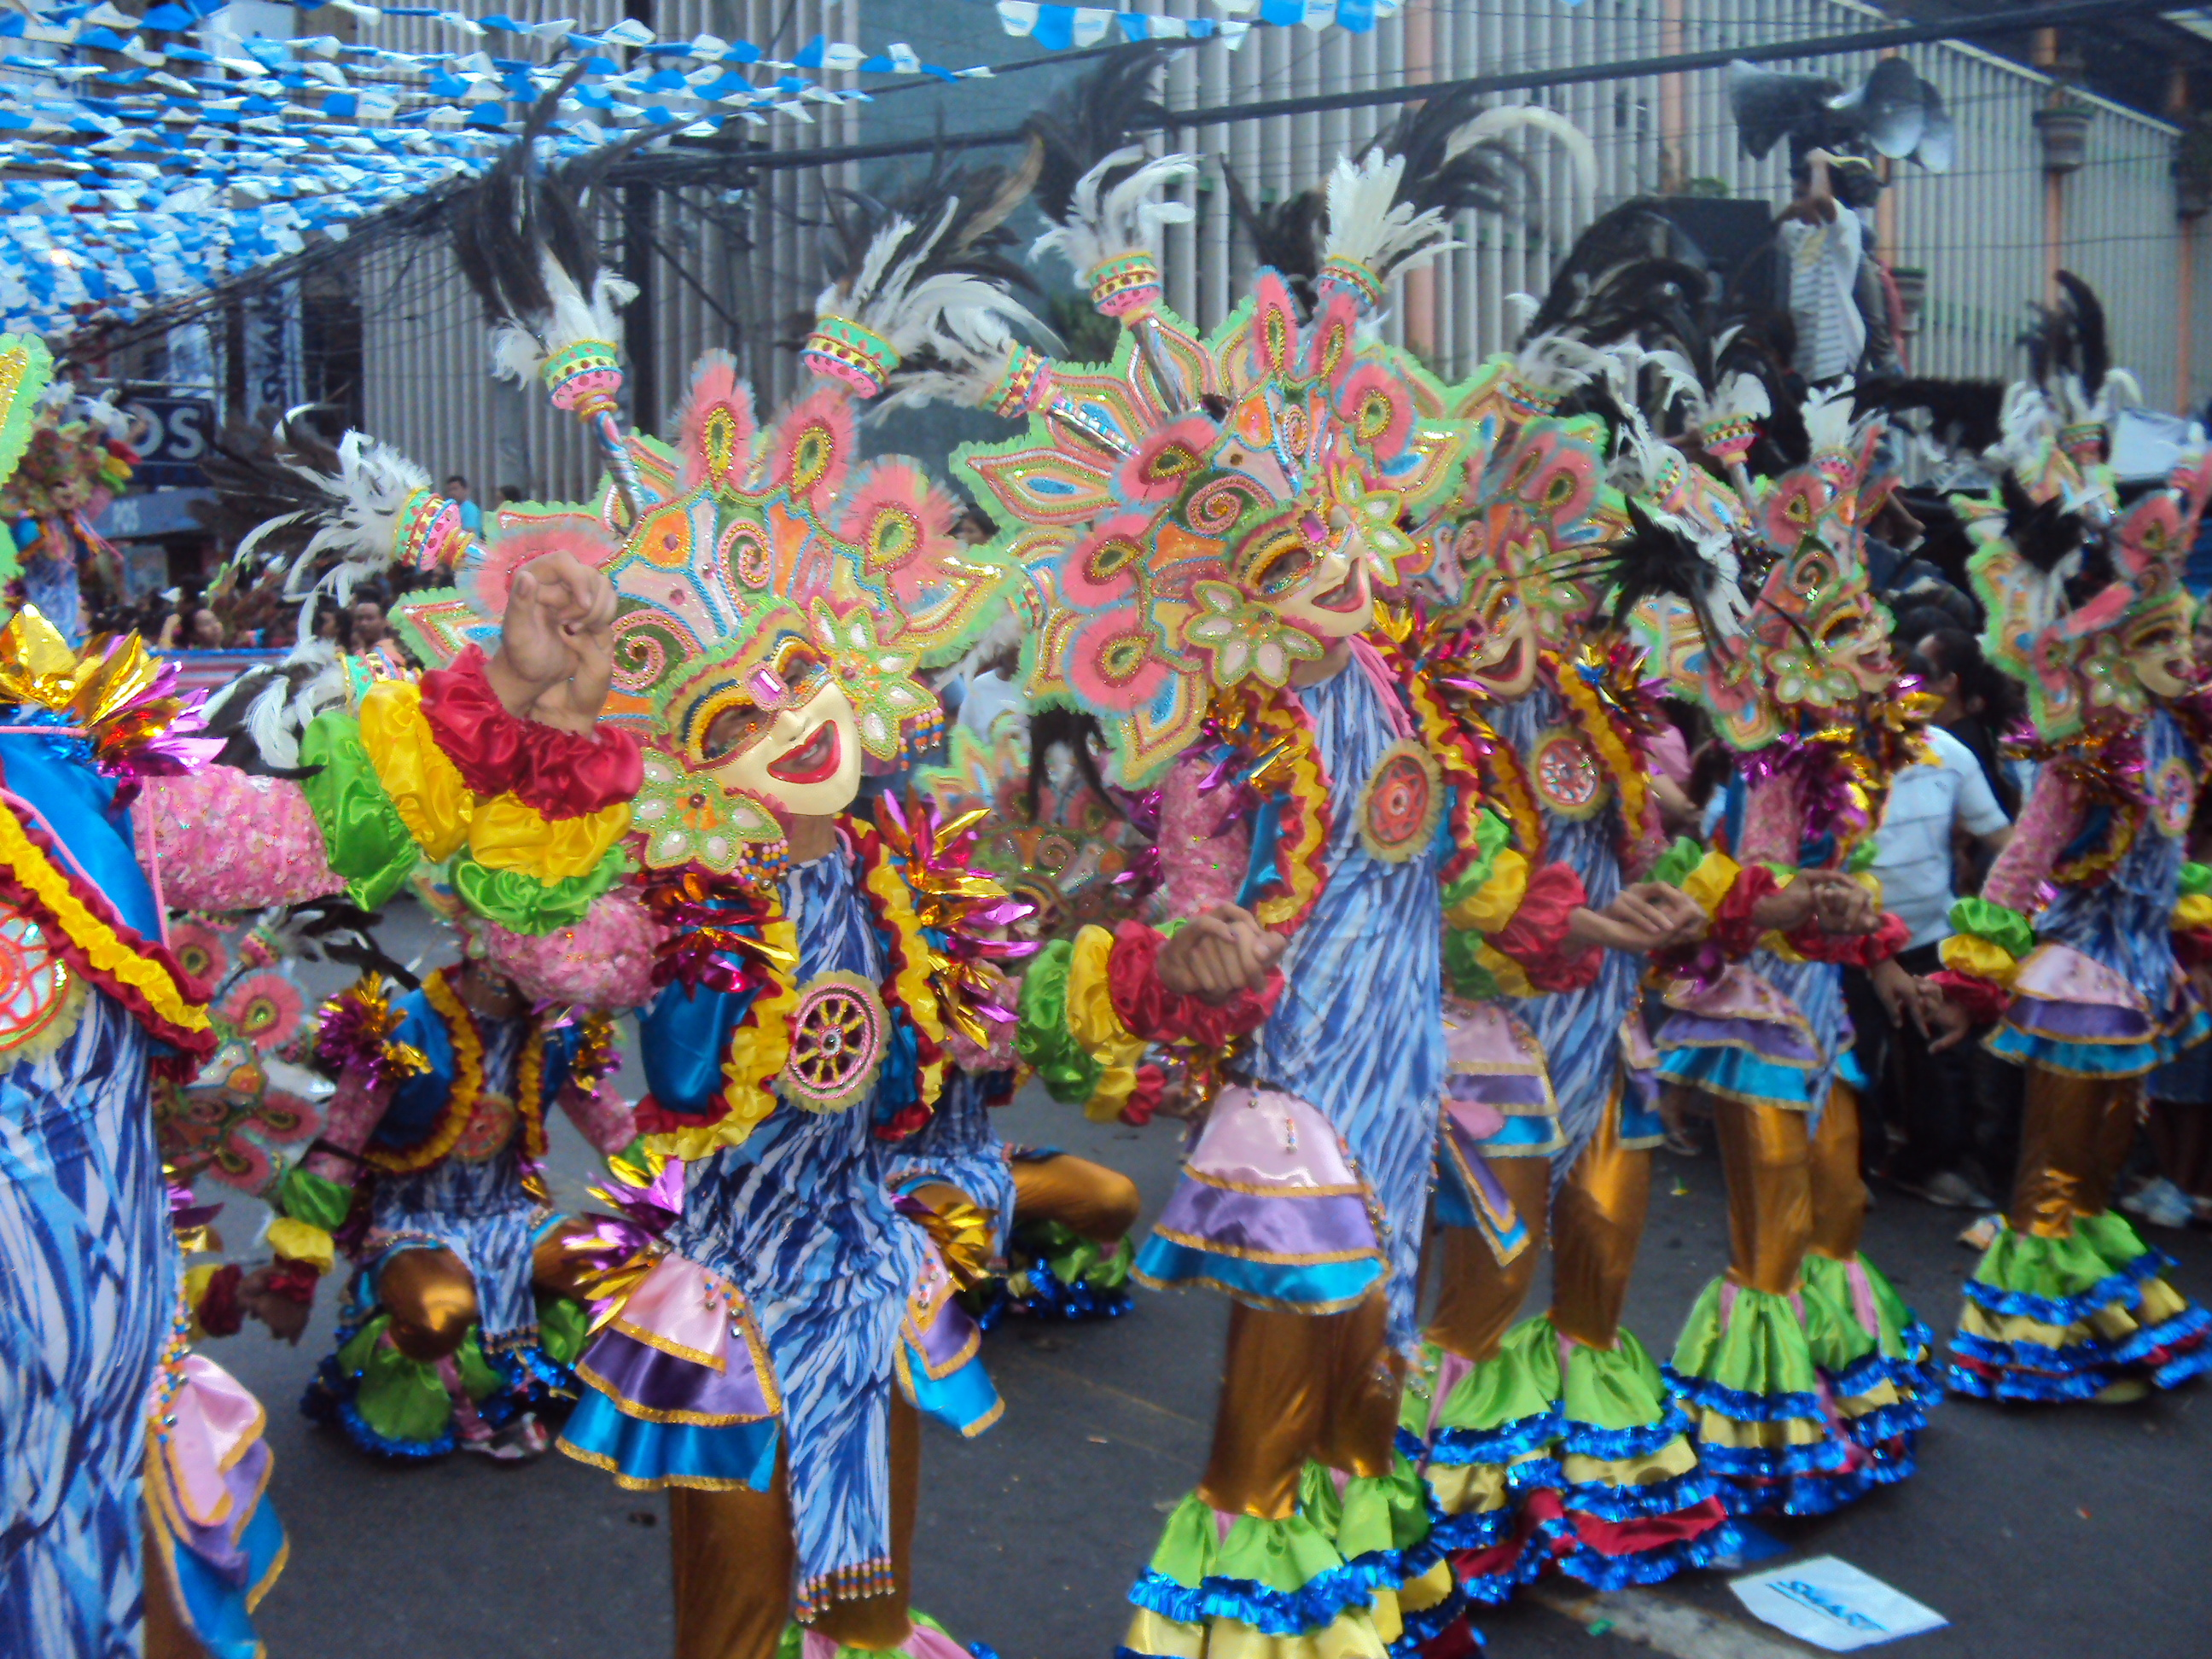 File:MassKara Festival, Bacolod City, Philippines.JPG  Wikipedia, the